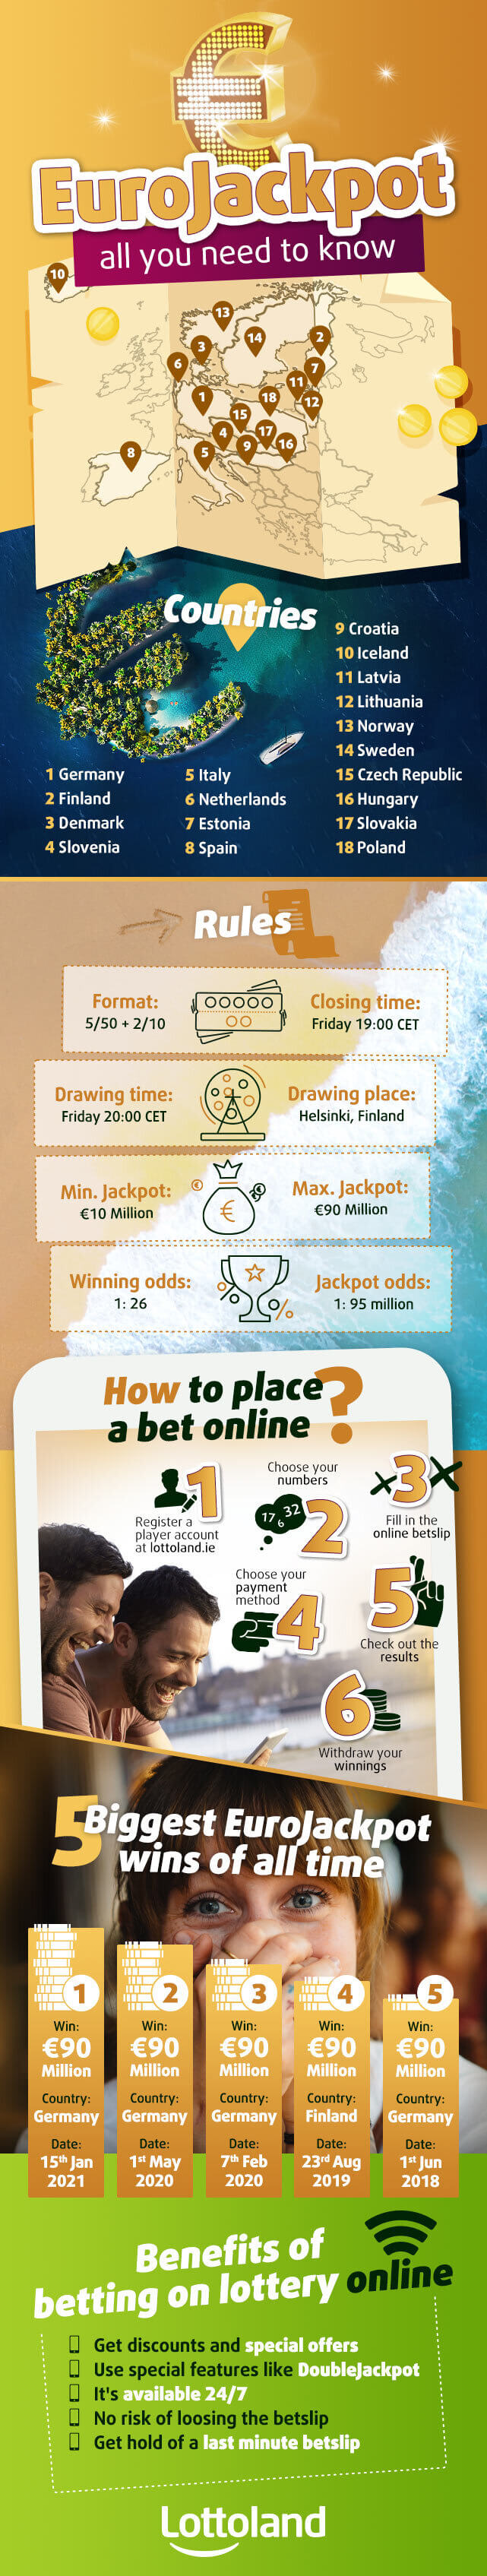 Infographic on how to bet on EuroJackpot online